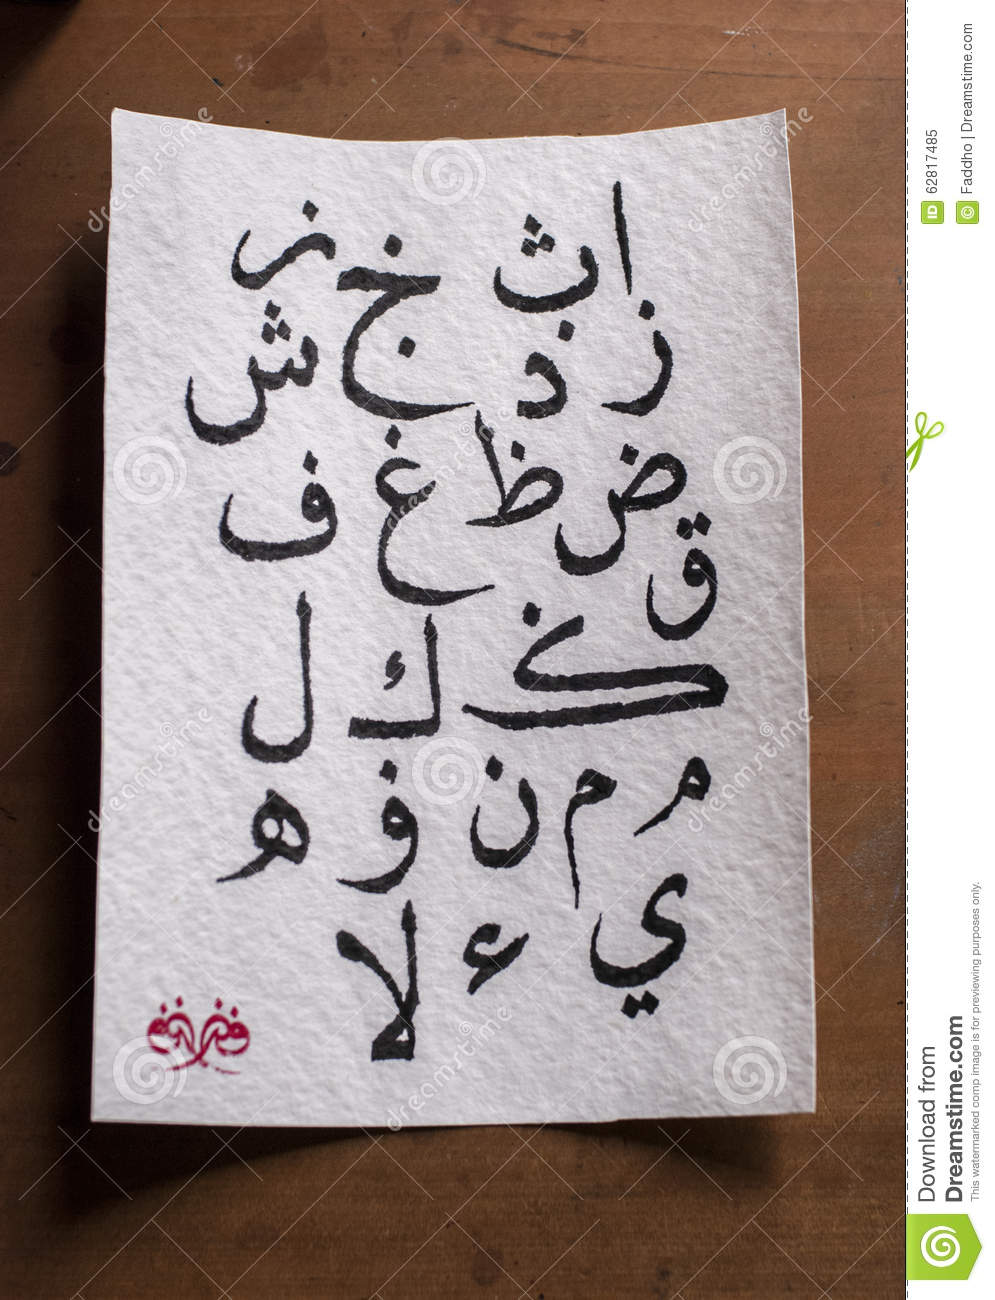 Arabic Calligraphy Of Basic Nasakh Letters On Rough Paper: calligraphy basics